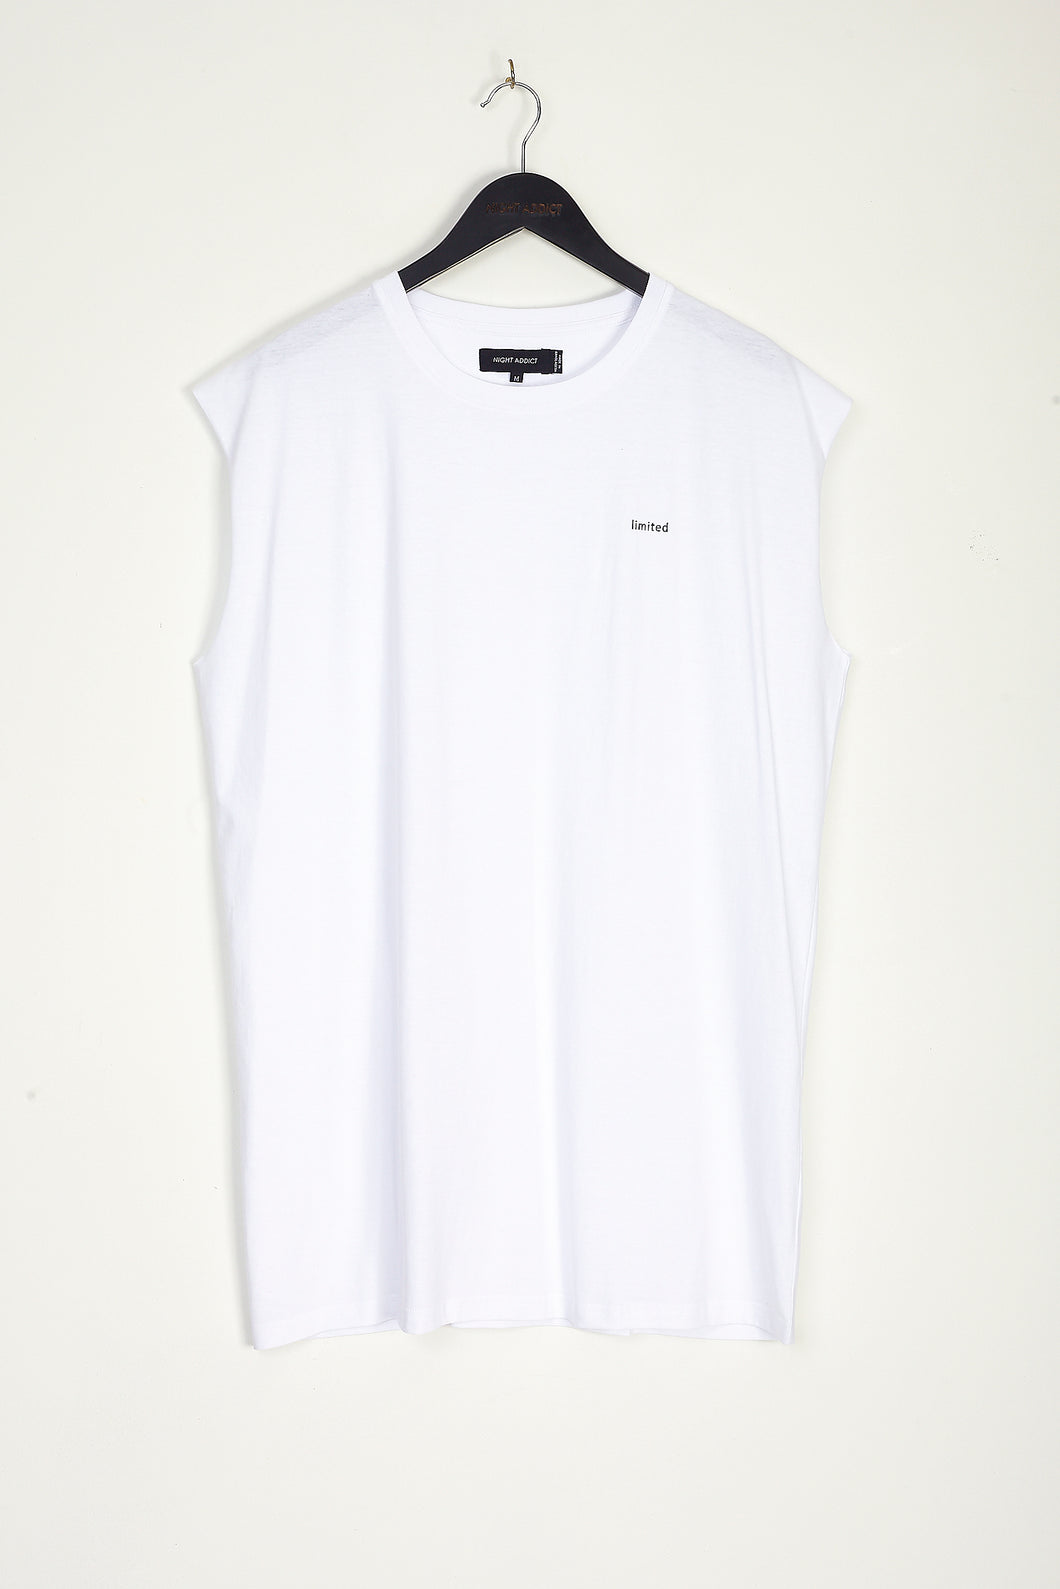 NIGHT ADDICT OVERSIZED WHITE 'LIMITED' VEST FRONT